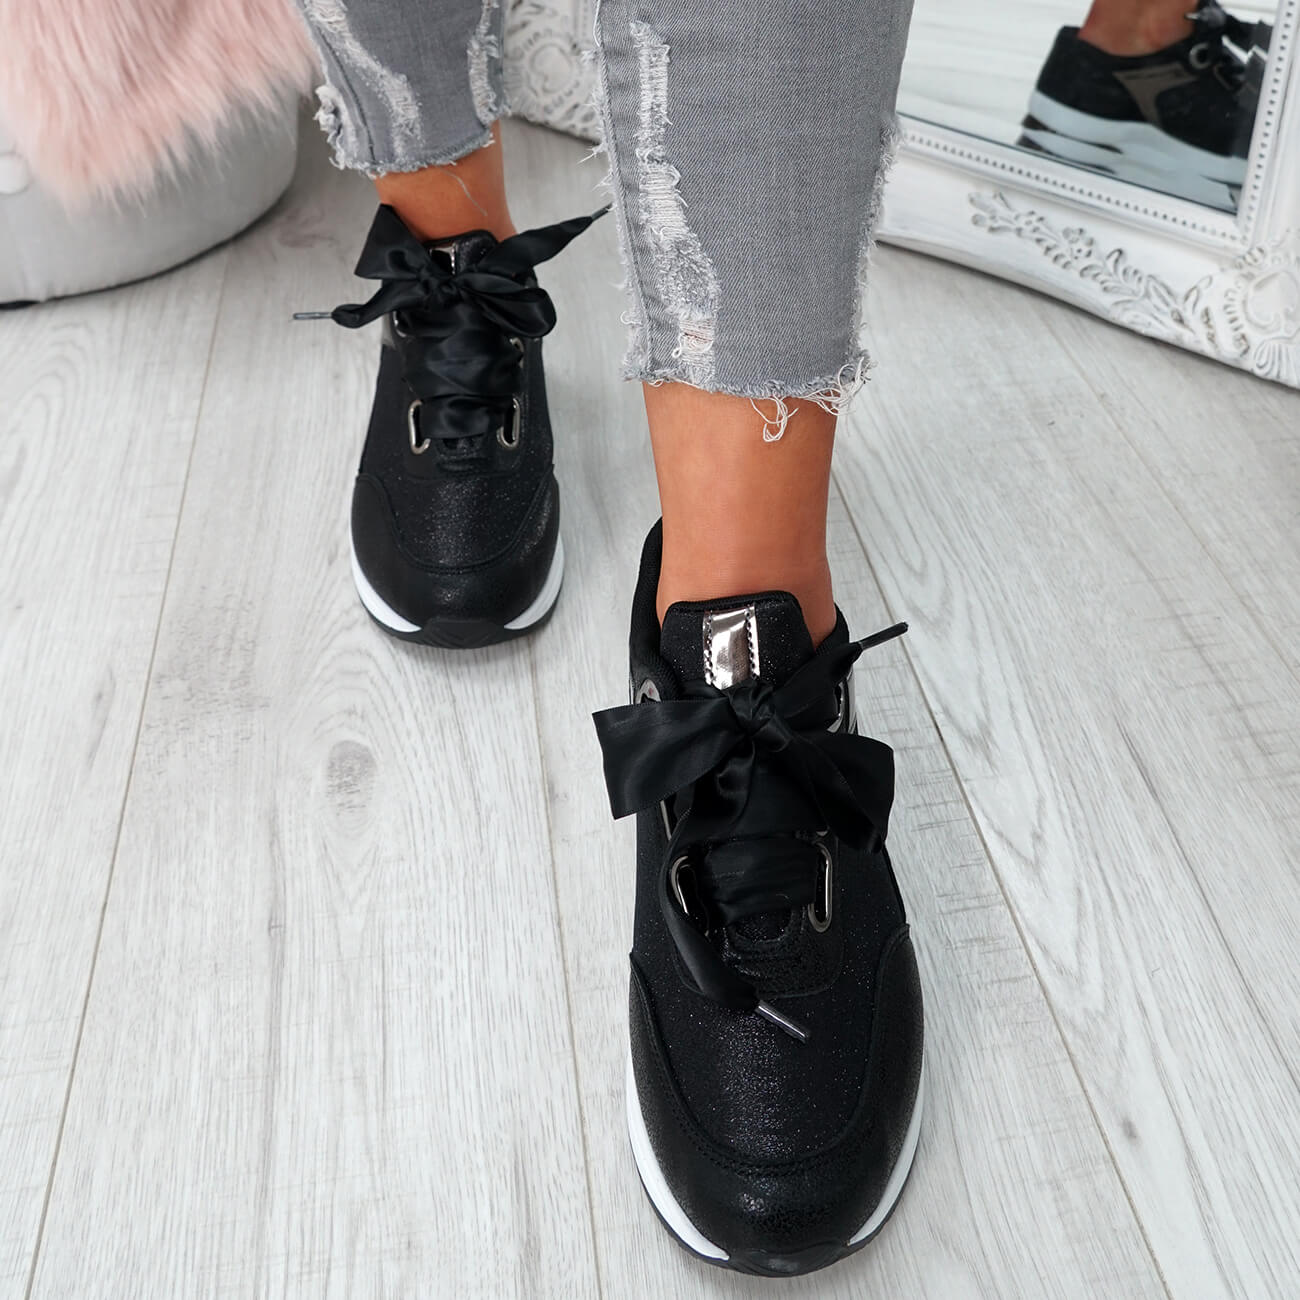 WOMENS-LADIES-RIBBON-TRAINERS-GLITTER-SPARKLE-SNEAKERS-RUNNING-FASHION-SHOES thumbnail 7